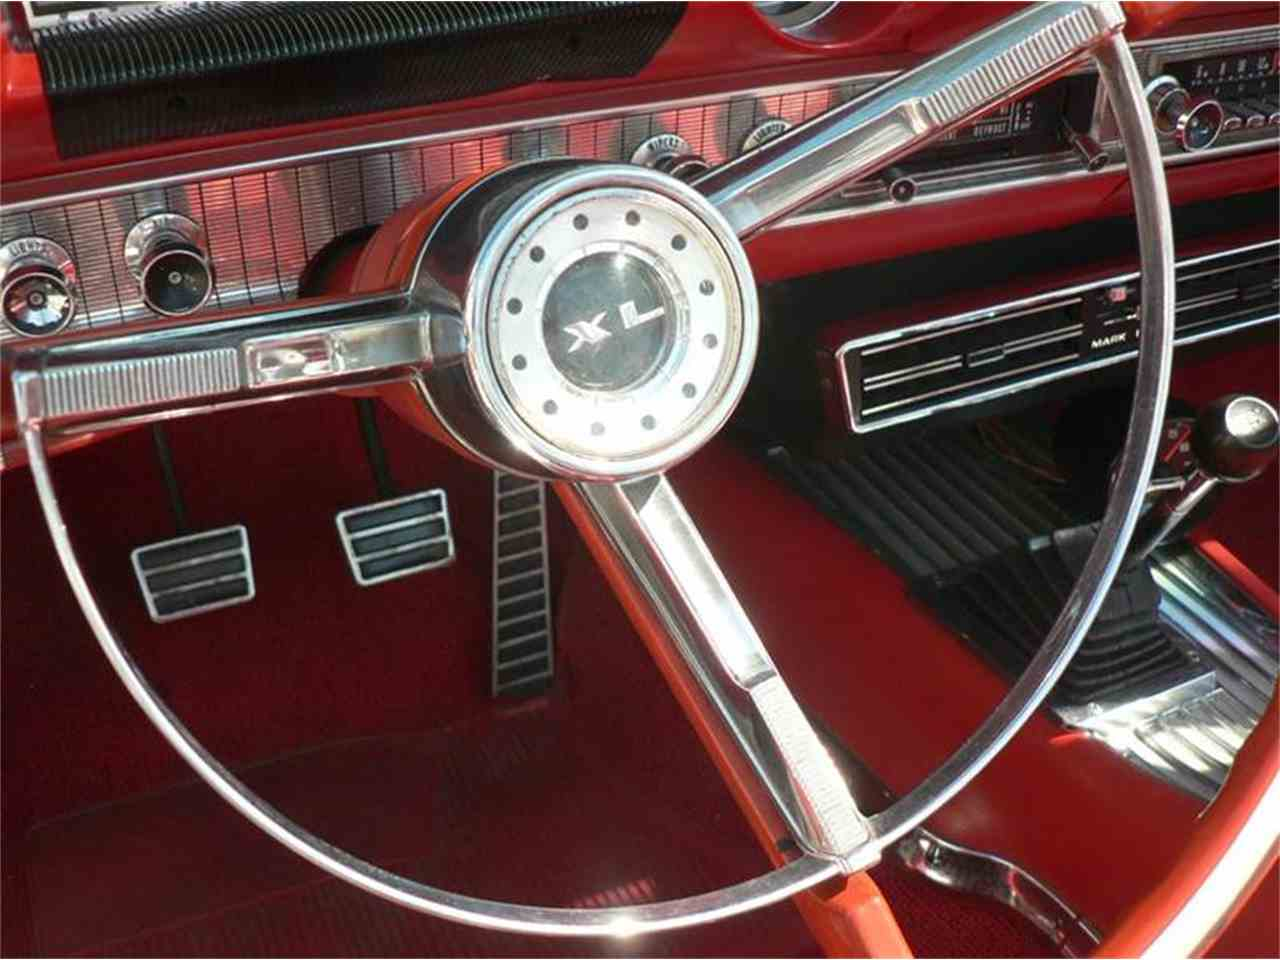 Large Picture of '63 Ford Galaxie 500 XL located in Charlottesville Virginia - $57,500.00 Offered by Cville Classic Cars - JW66